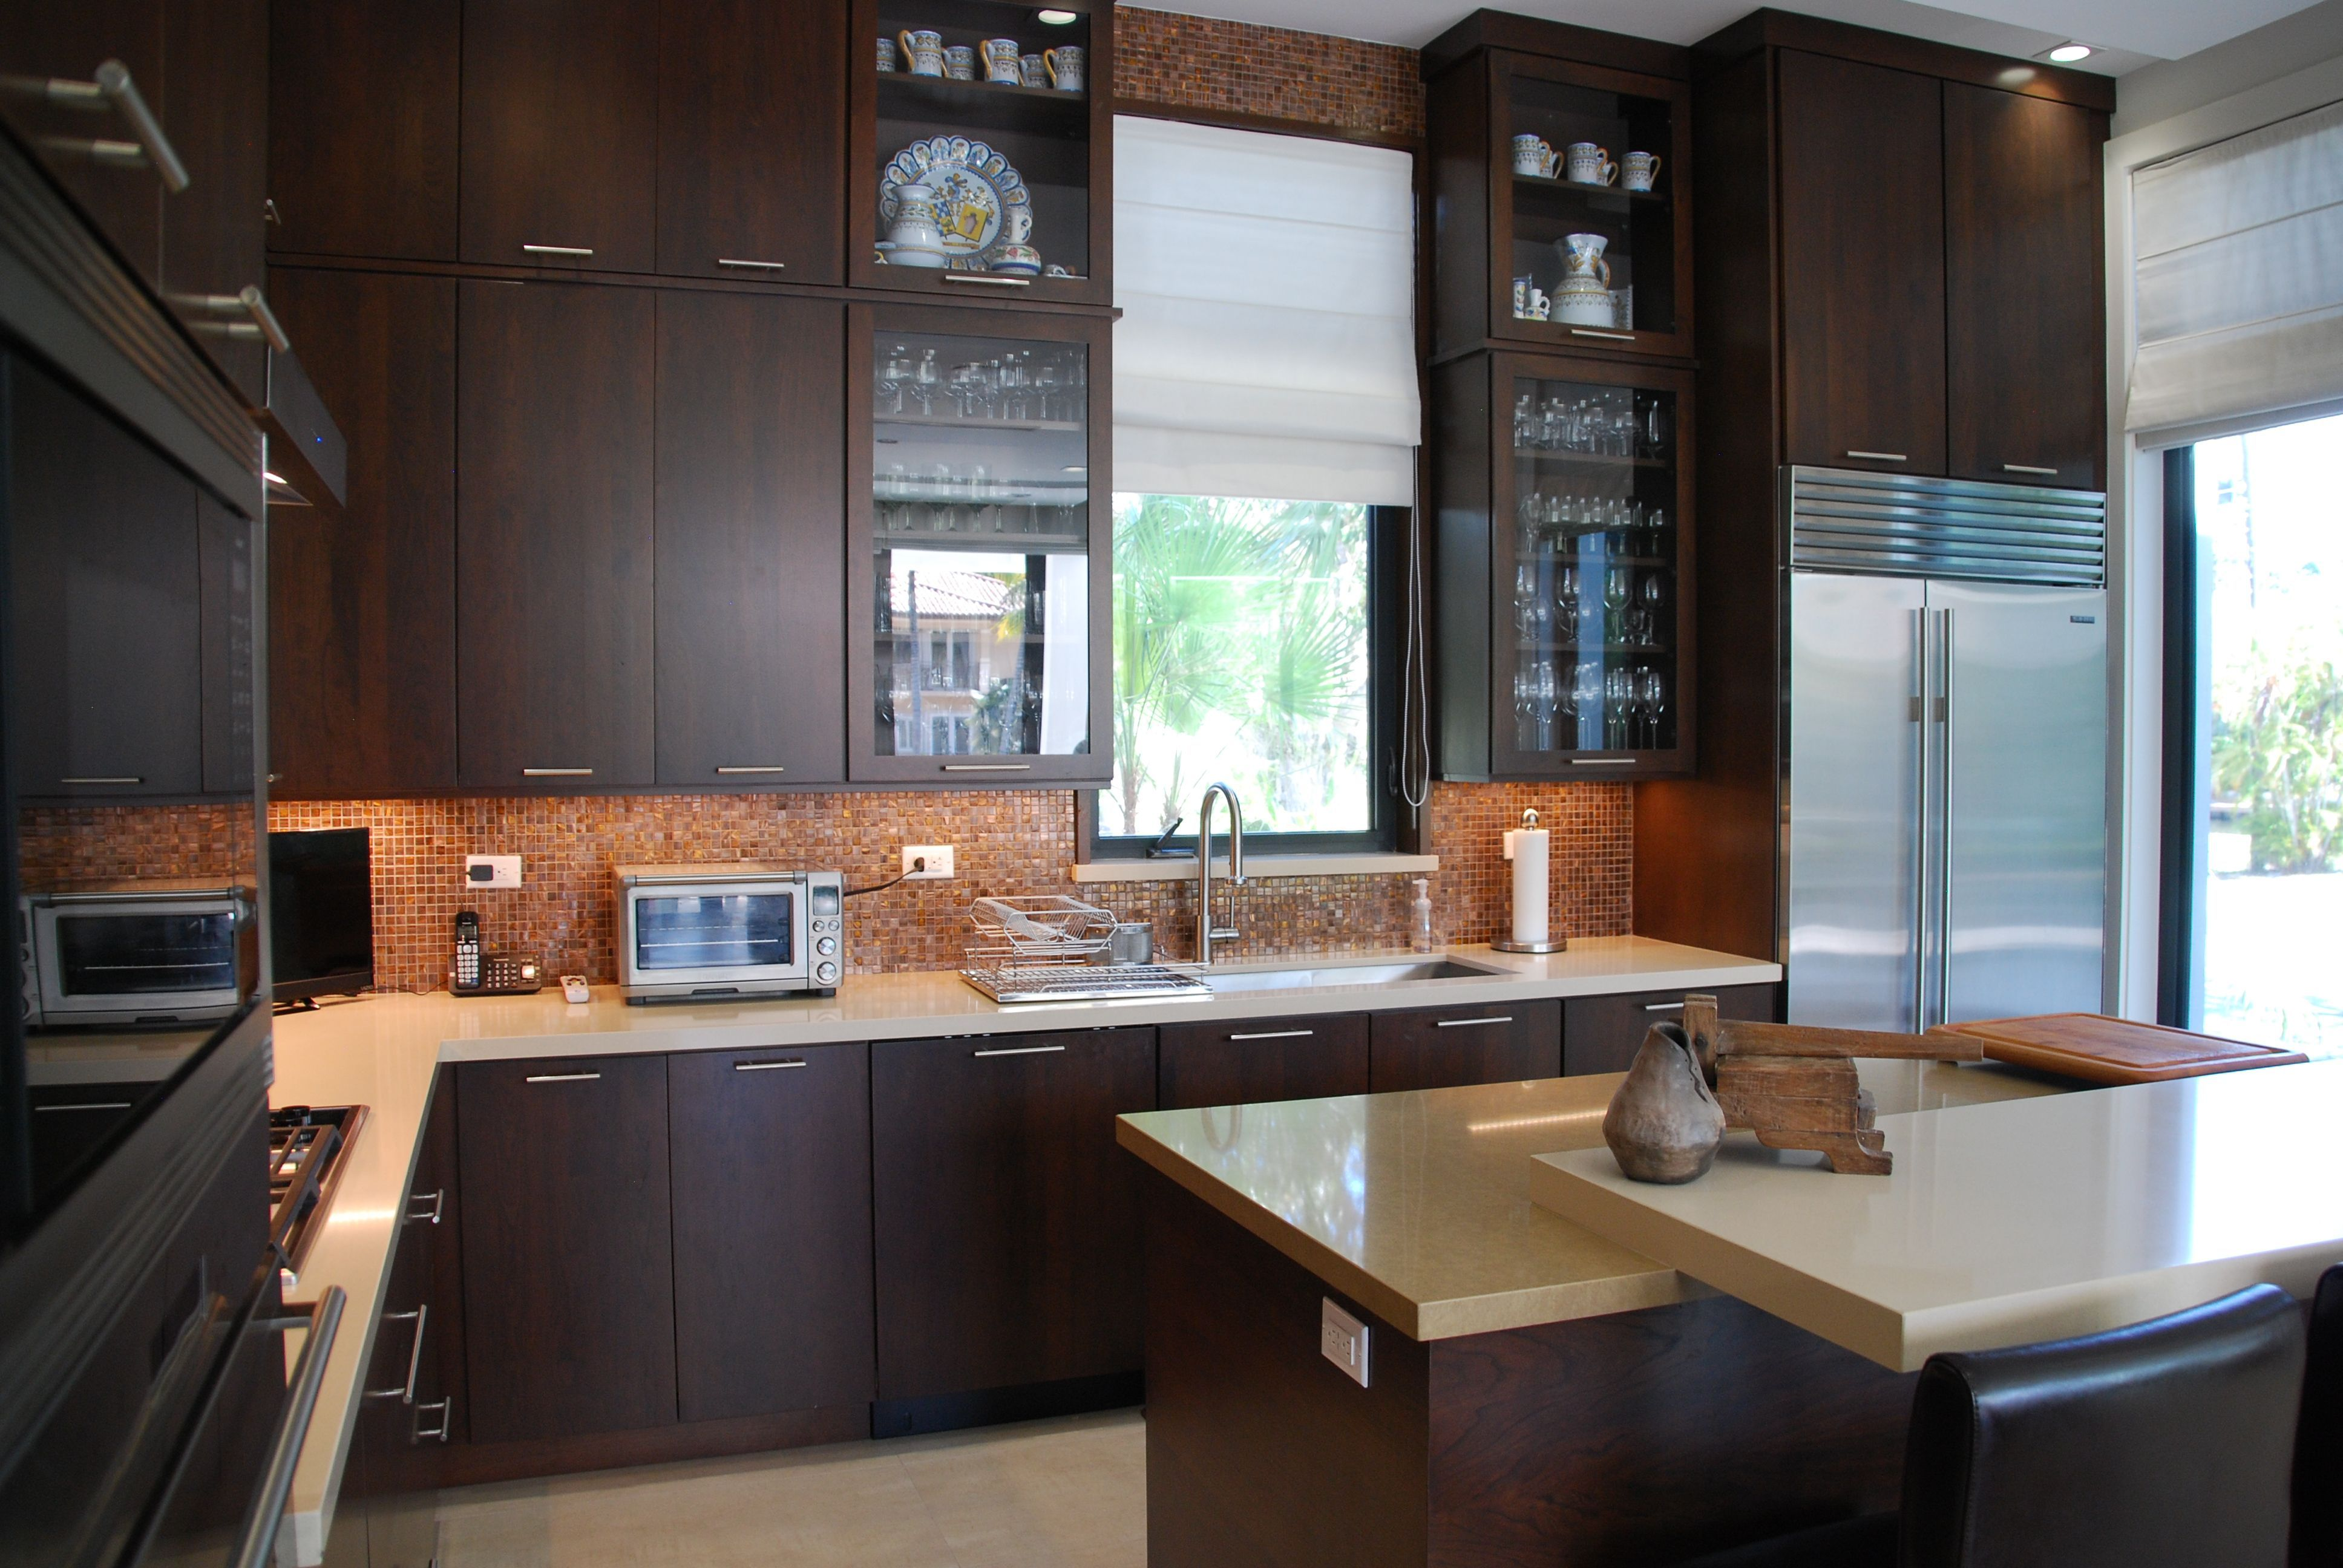 Dark Cabinets With White Countertops Is Always A Good Choice Call Us At 305 234 1990 In 2020 White Countertops Dark Cabinets Countertops